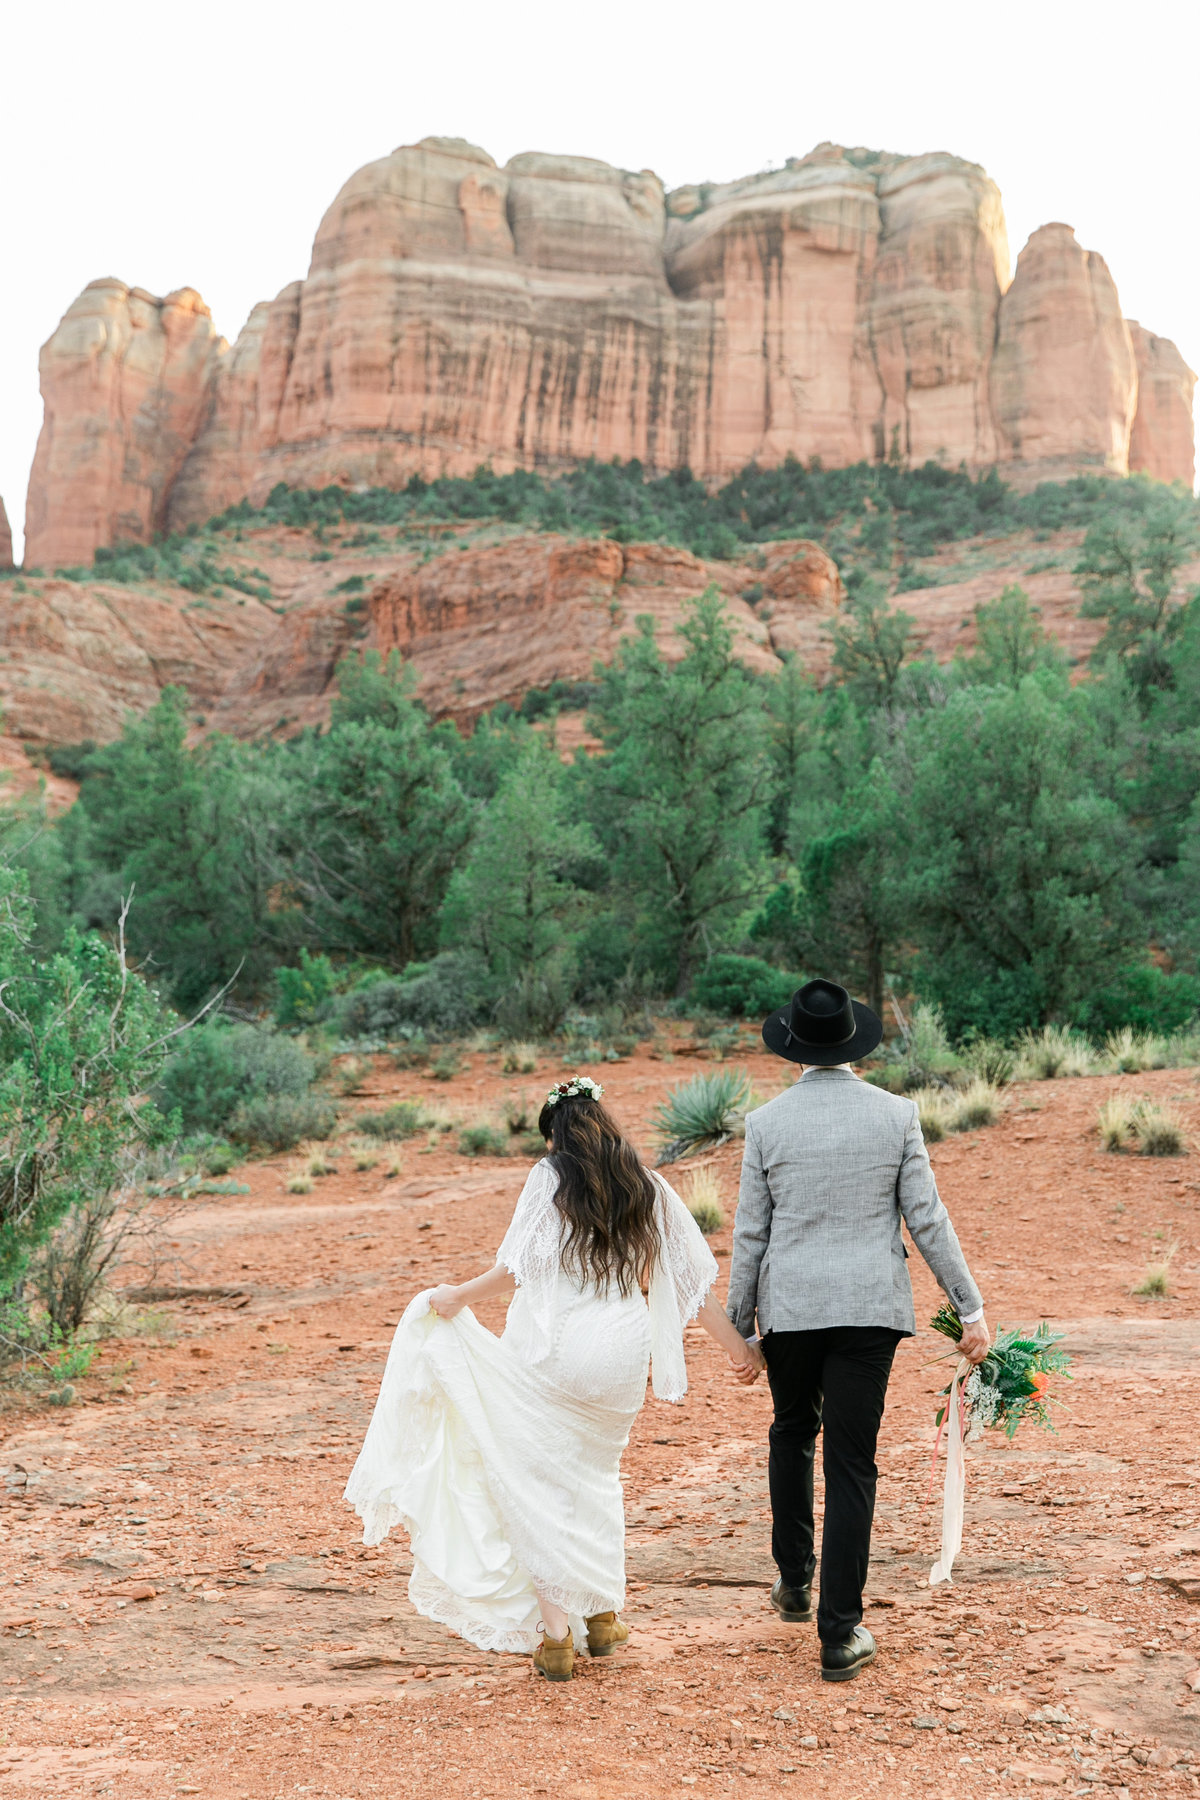 Karlie Colleen Photography - Sedona Arizona Elopement Wedding - Sara & Alfredo-196